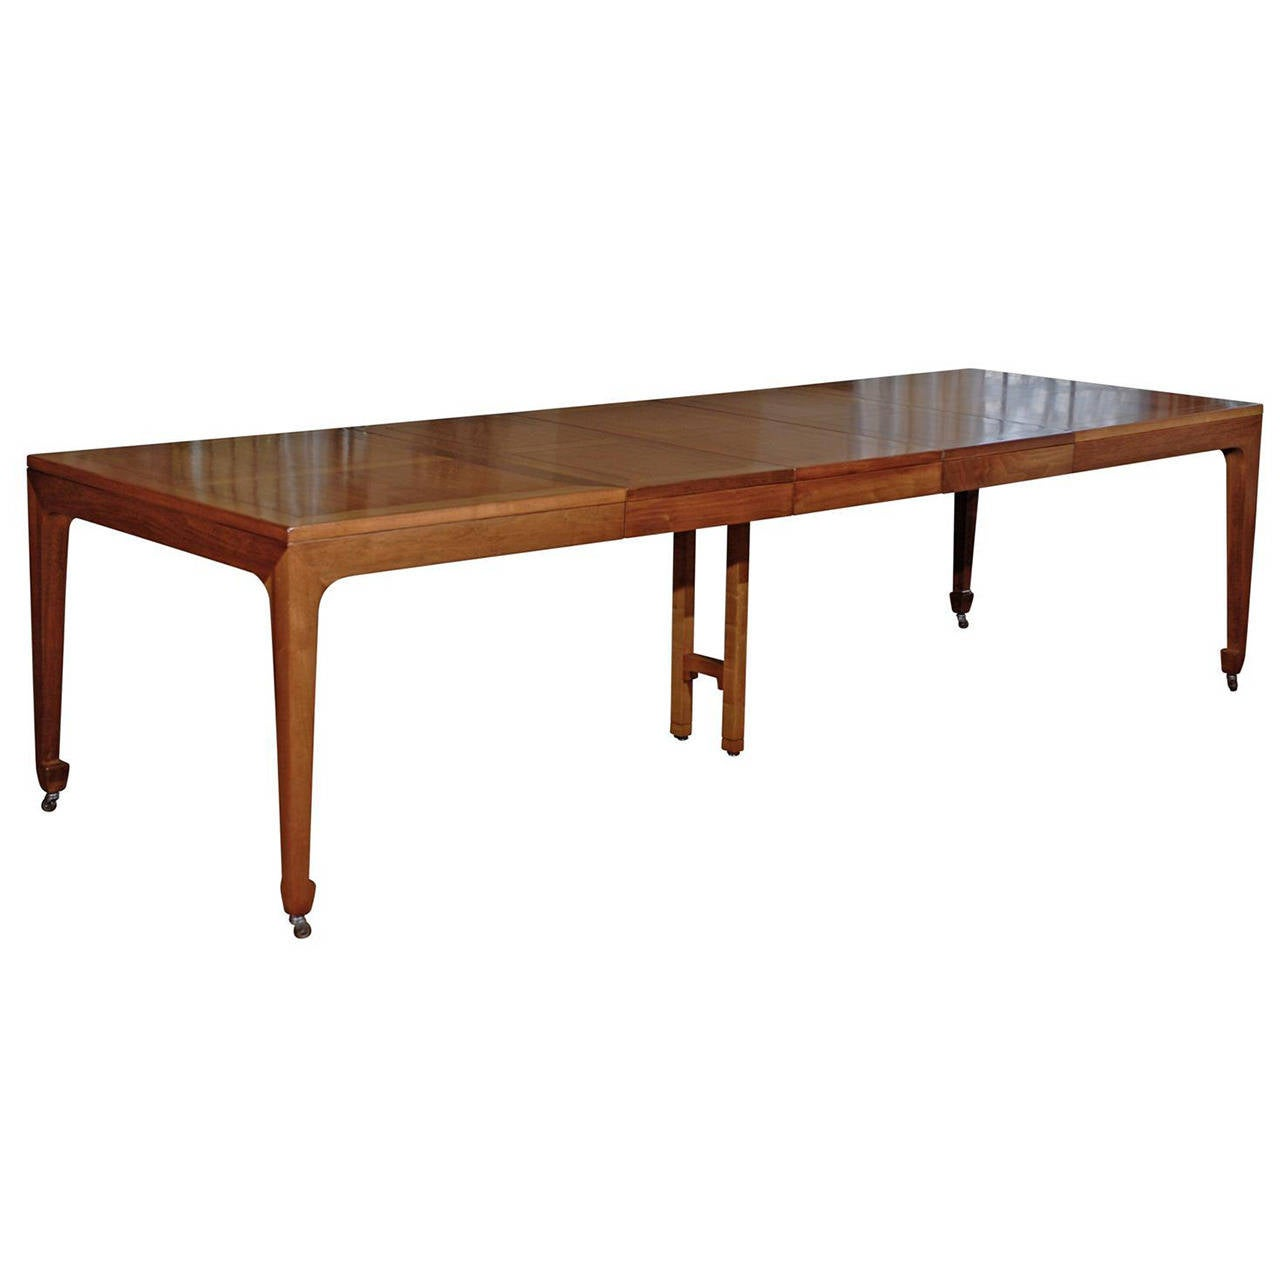 Breathtaking Vintage Baker Extension Dining Table in  : 1828072l from www.1stdibs.com size 1280 x 1280 jpeg 47kB